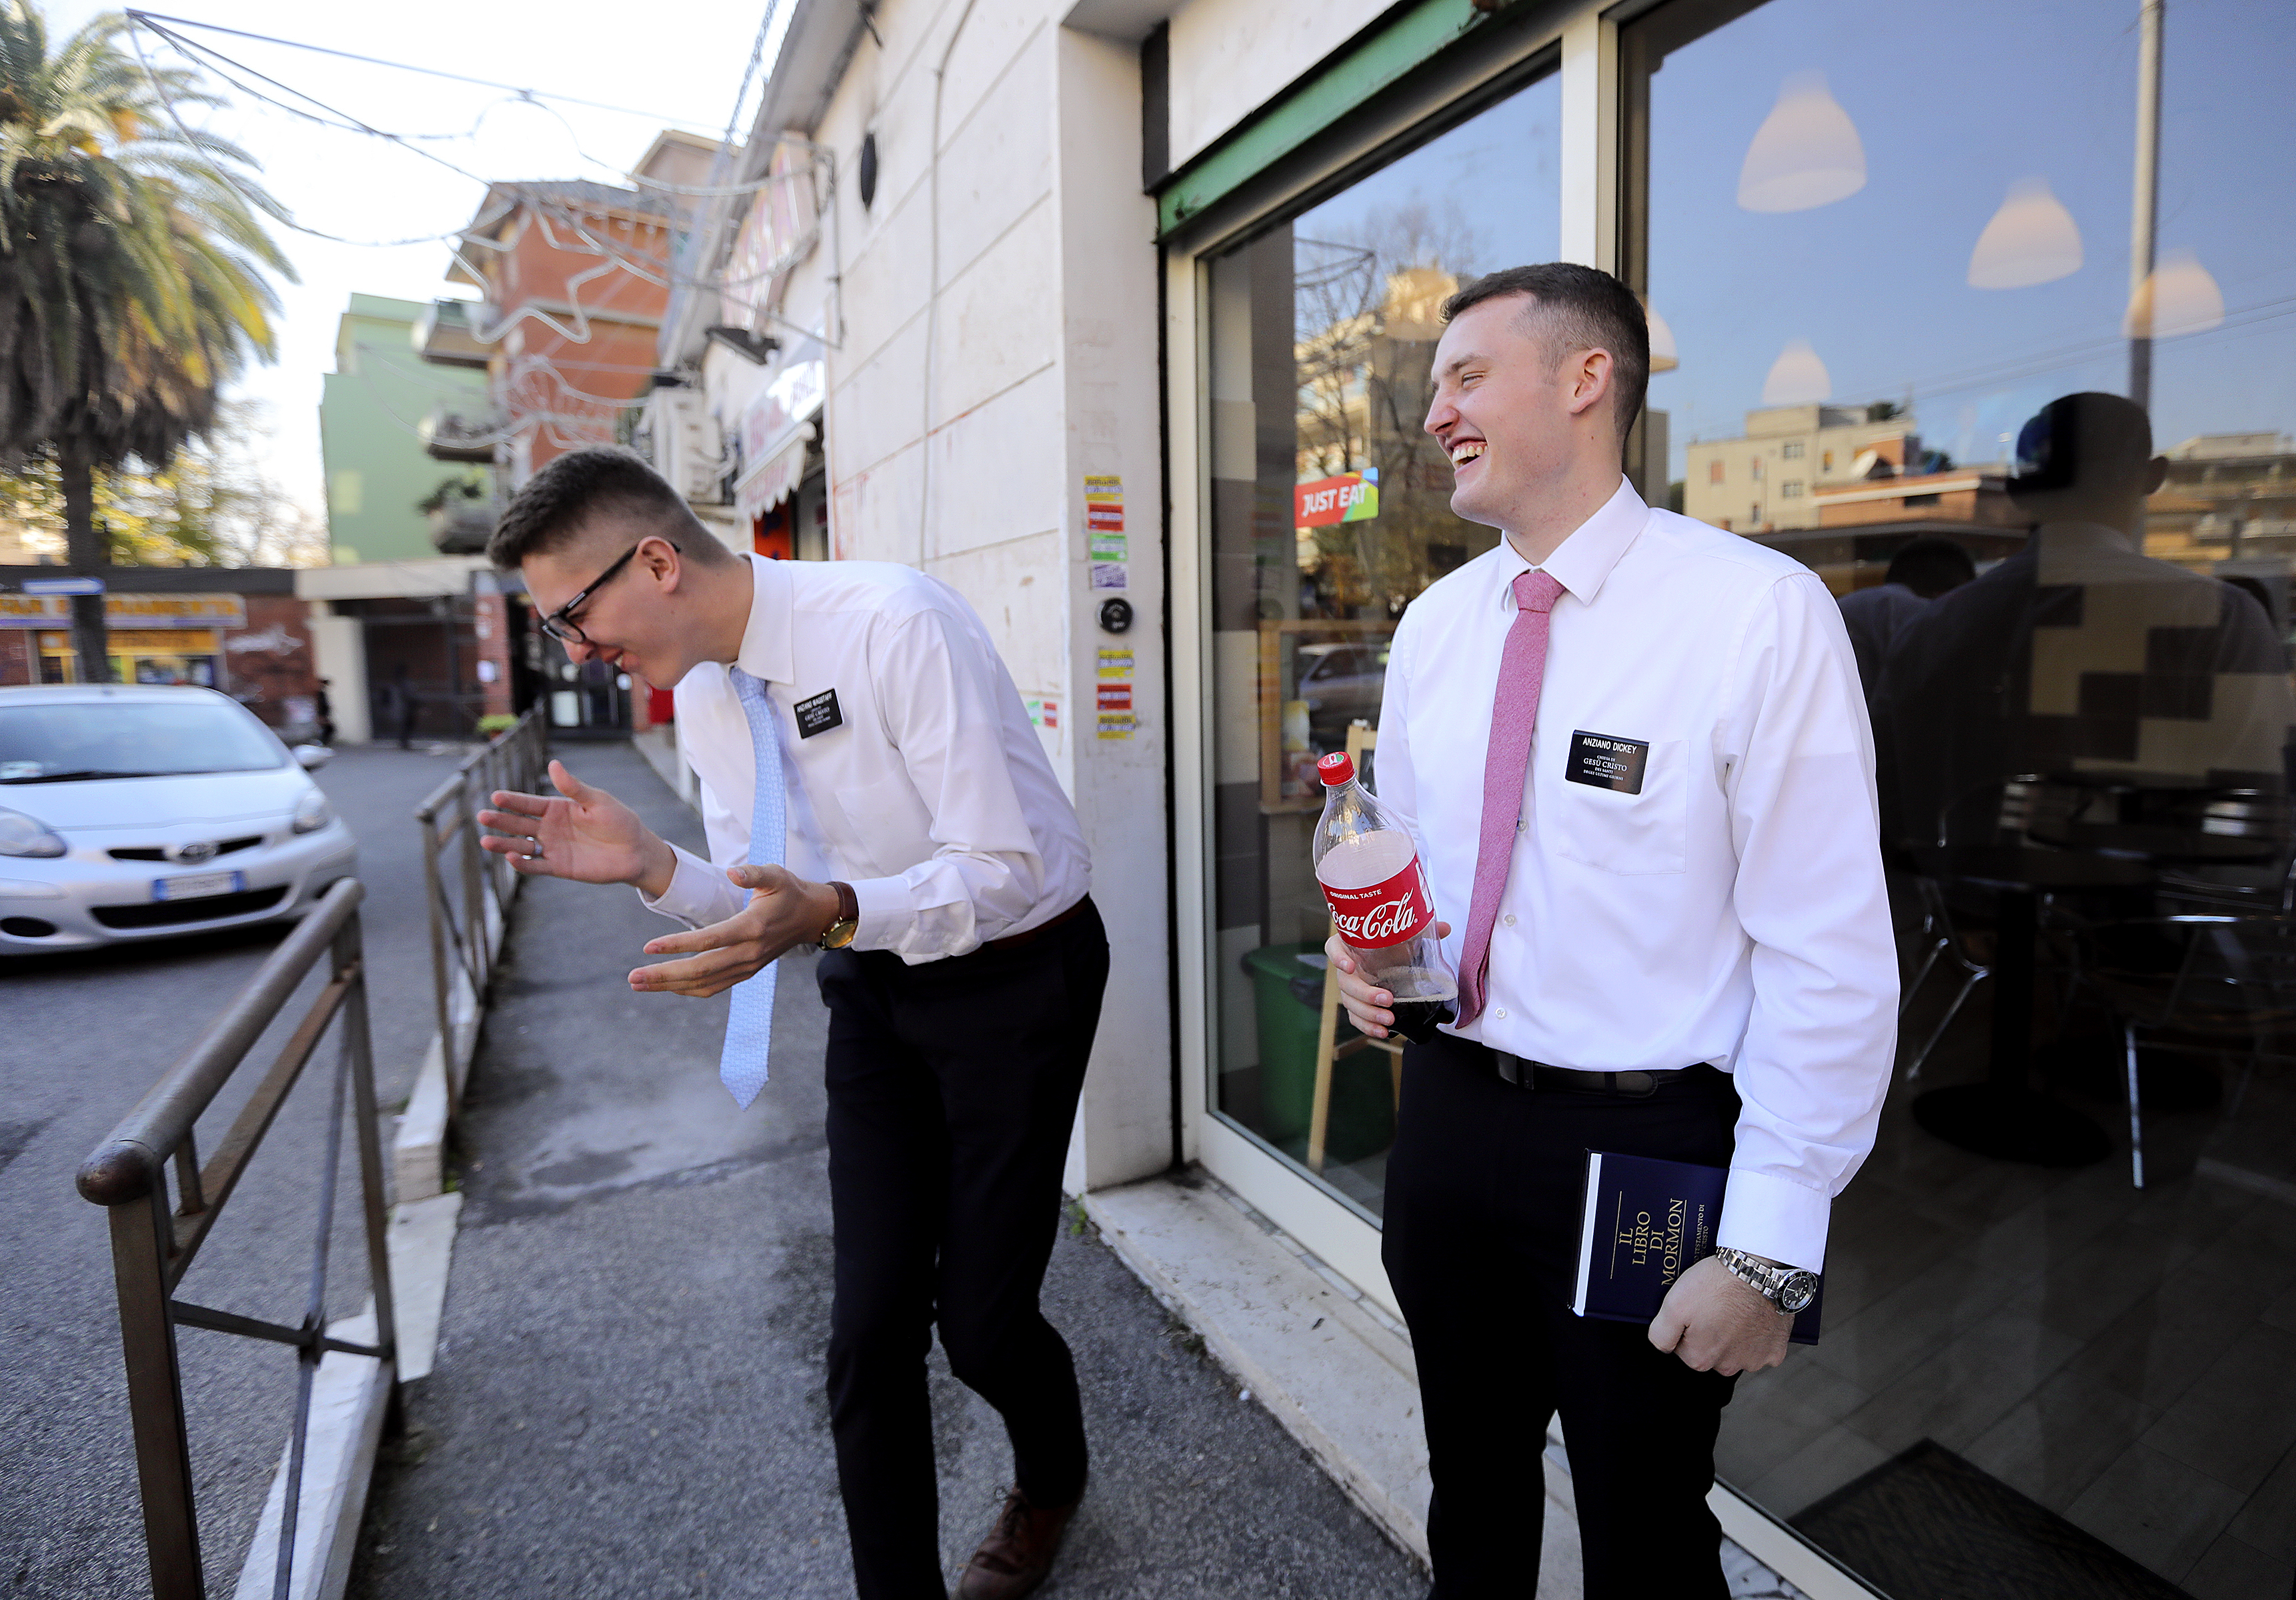 Elder Travis Wagstaff and Elder Bryce Dickey laugh after finishing lunch in Rome, Italy, on Saturday, Nov. 17, 2018.